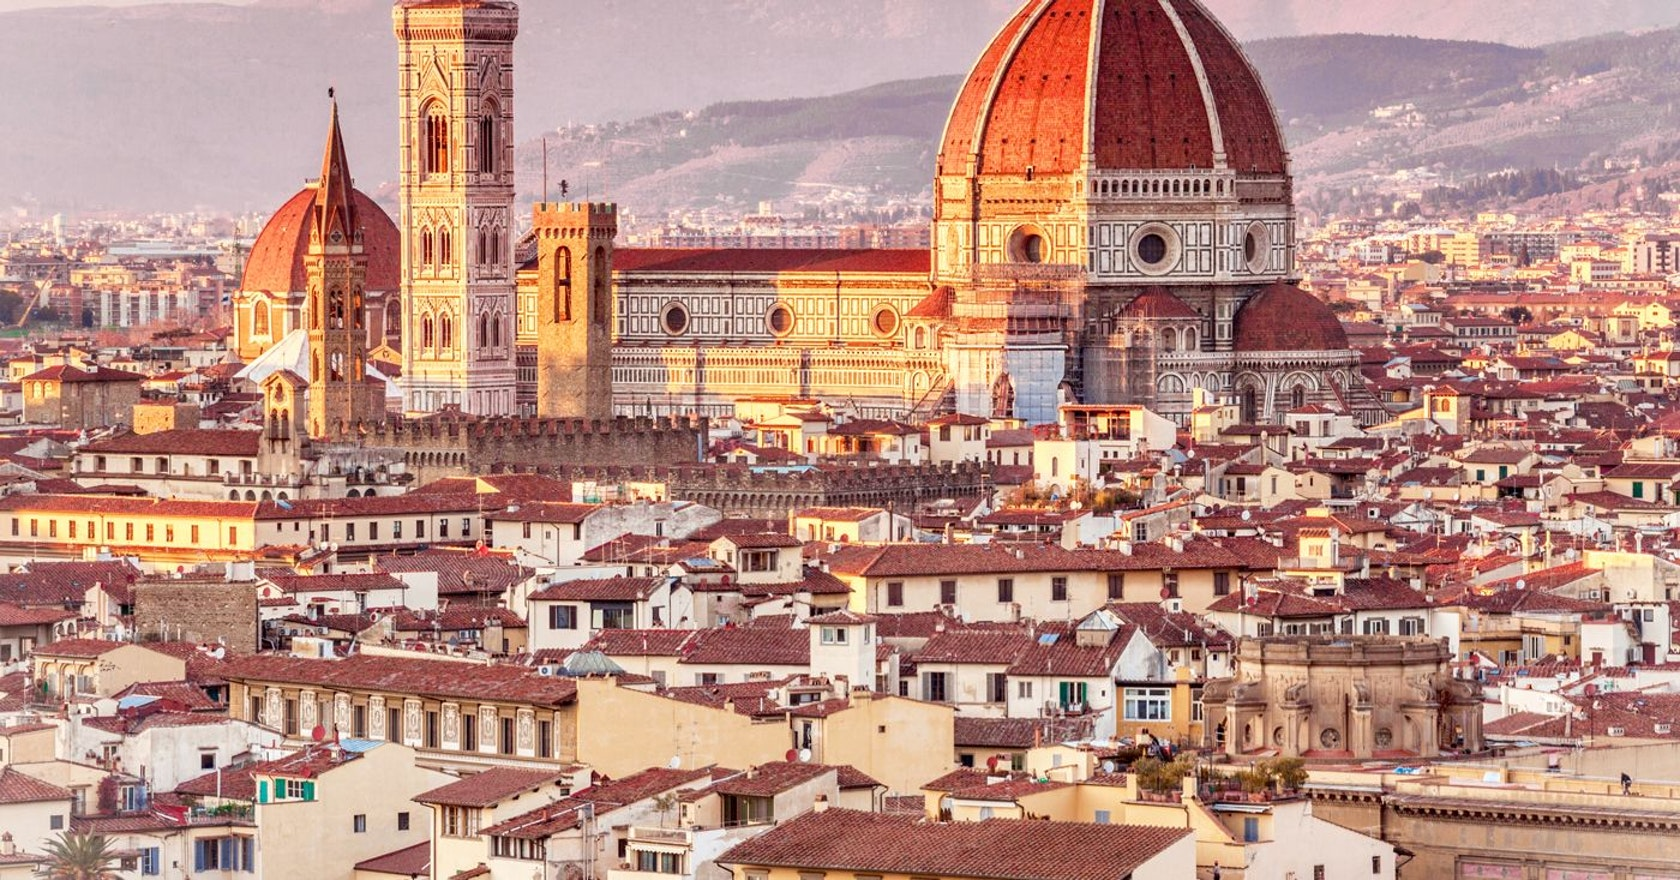 The non-touristy guide to a city break in Florence